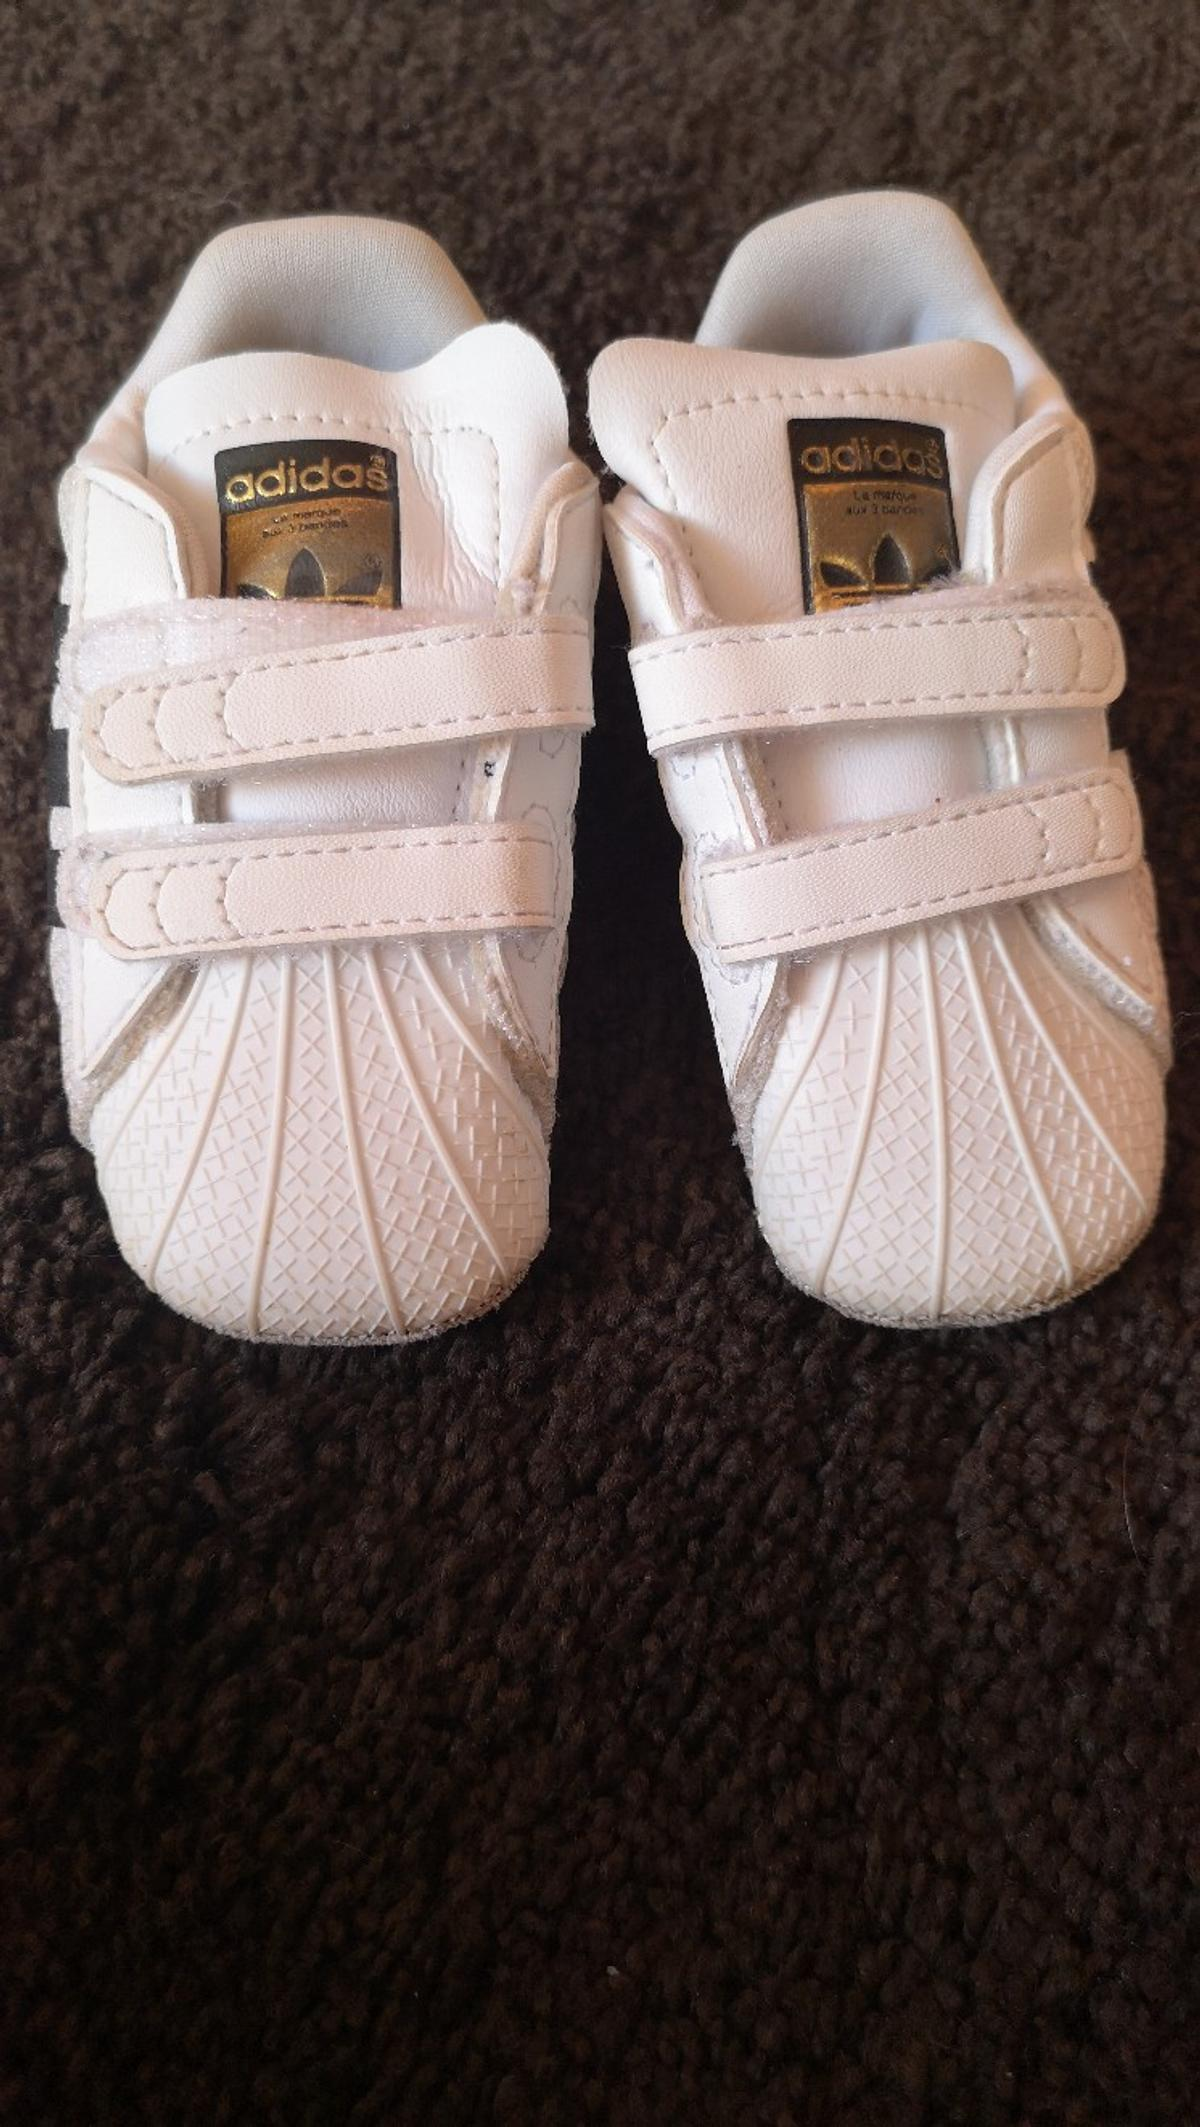 premium selection d04bc 4d2fc Baby superstars in Leicester for £7.00 for sale - Shpock